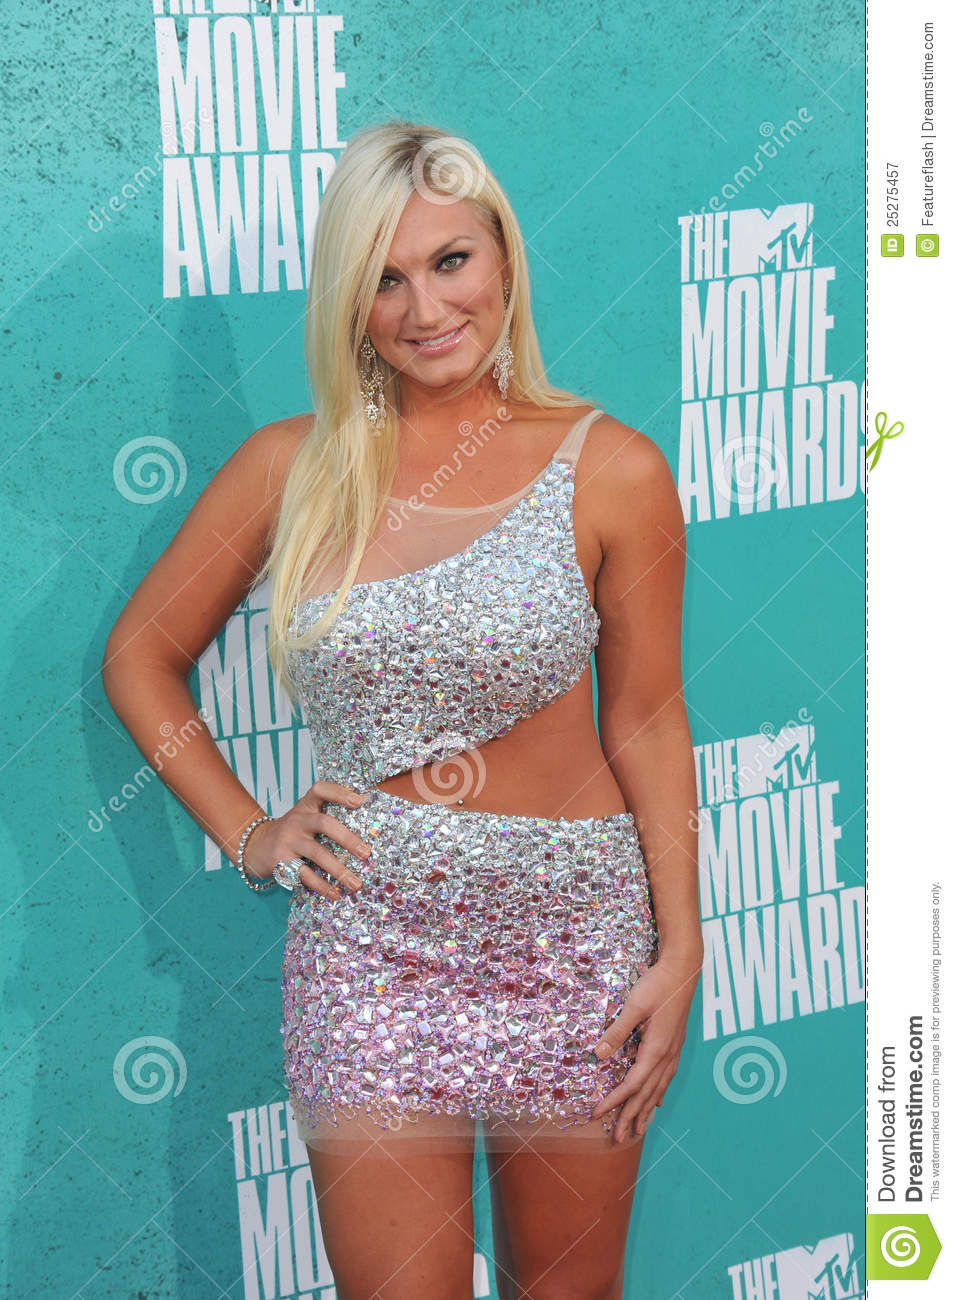 who is brooke hogan dating 2012 Brooke hogan splits with soon-to-be husband amid news hulk hogan was also the same person who previously stated that he was not a fan of brooke's black boyfriend.